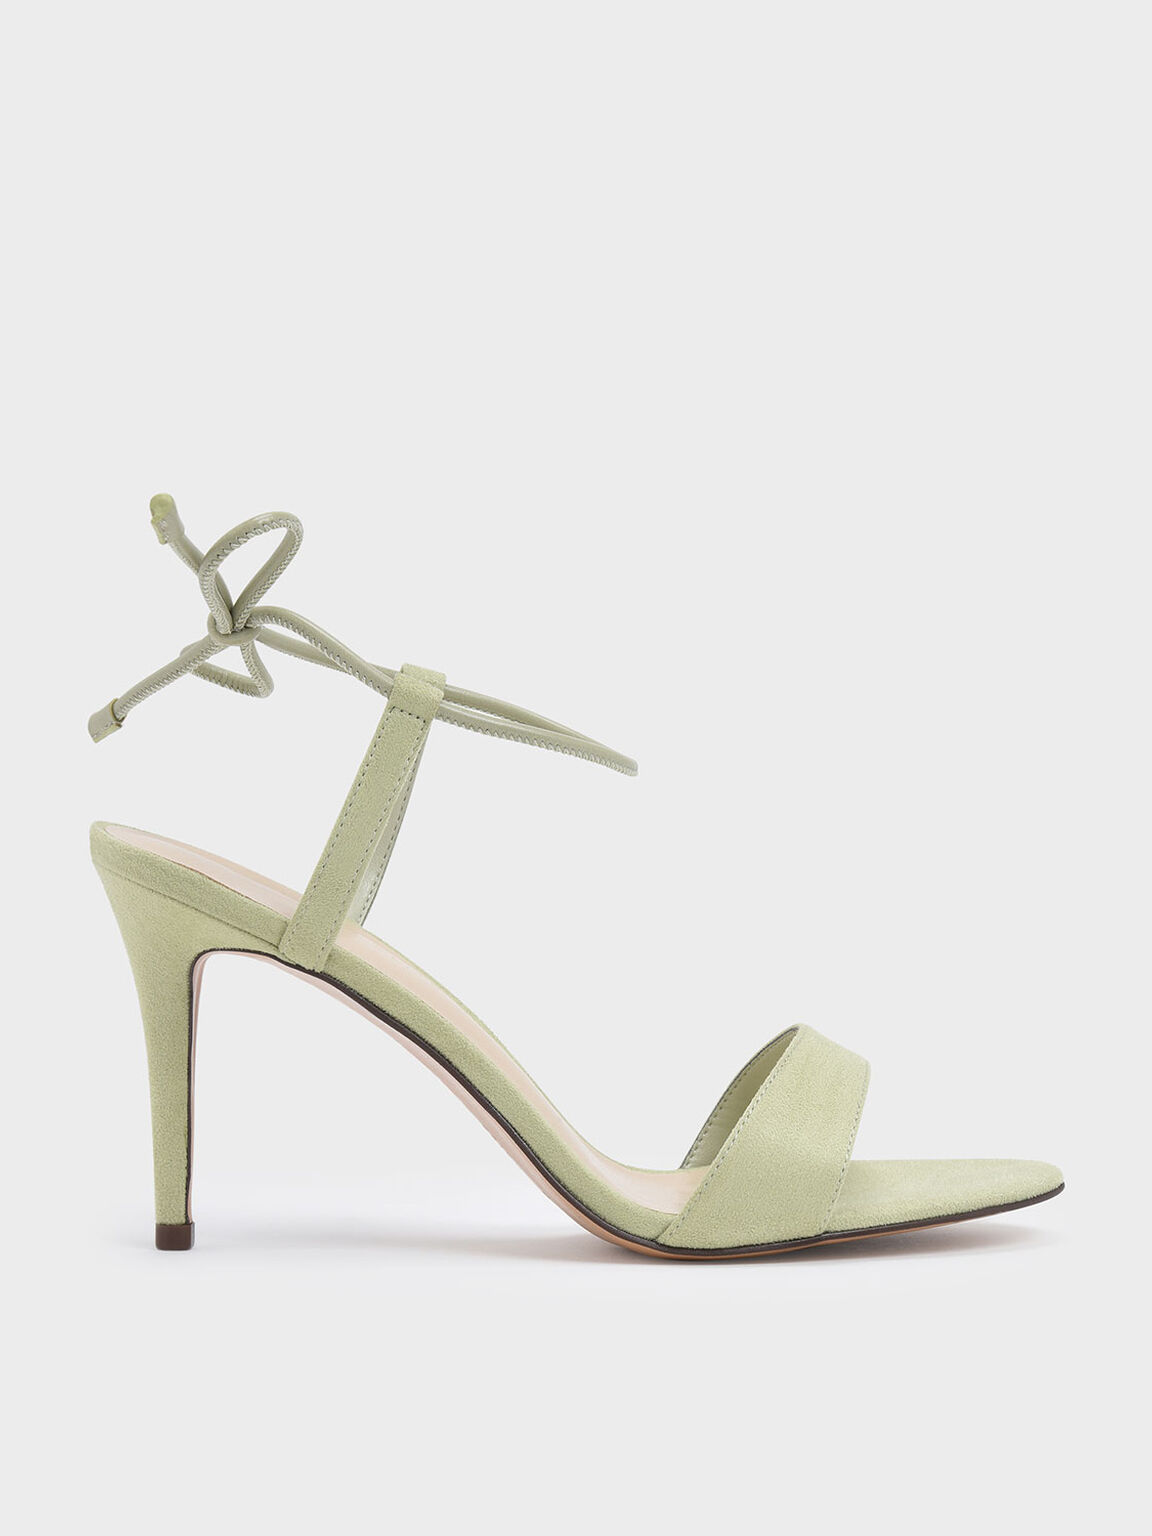 Ankle Tie Stiletto Sandals, Green, hi-res